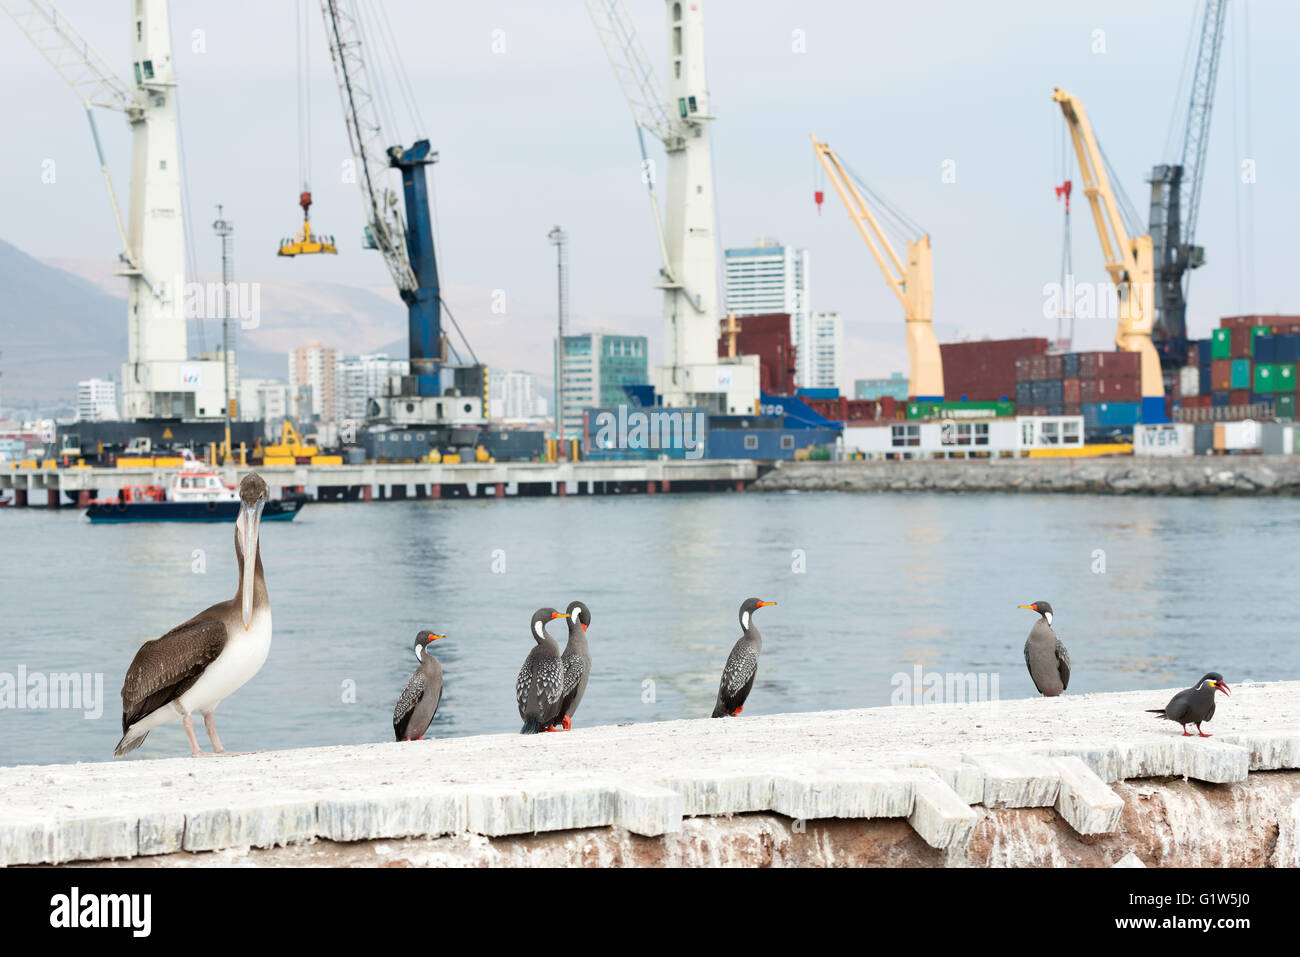 Tower cranes at the port of Iquique with autochthonous wild birds in the foreground, Iquique, Chile - Stock Image